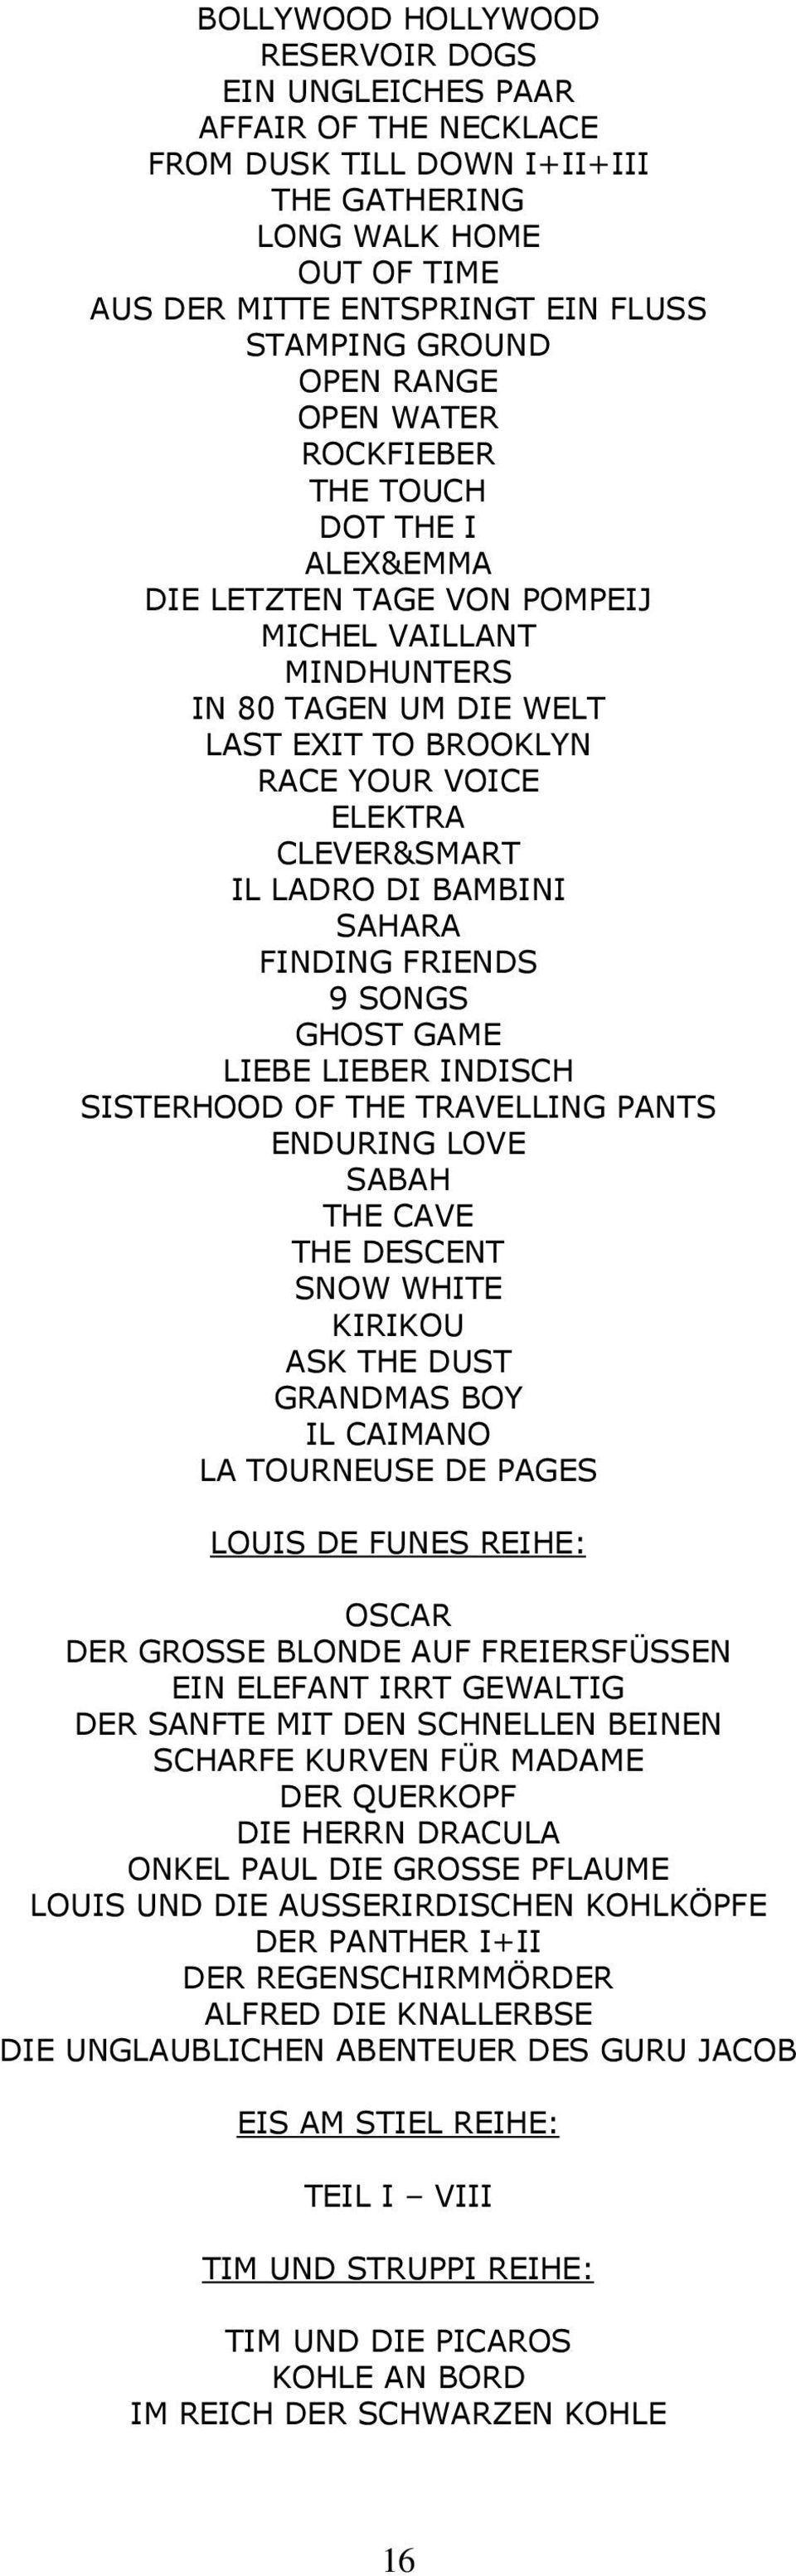 CLEVER&SMART IL LADRO DI BAMBINI SAHARA FINDING FRIENDS 9 SONGS GHOST GAME LIEBE LIEBER INDISCH SISTERHOOD OF THE TRAVELLING PANTS ENDURING LOVE SABAH THE CAVE THE DESCENT SNOW WHITE KIRIKOU ASK THE